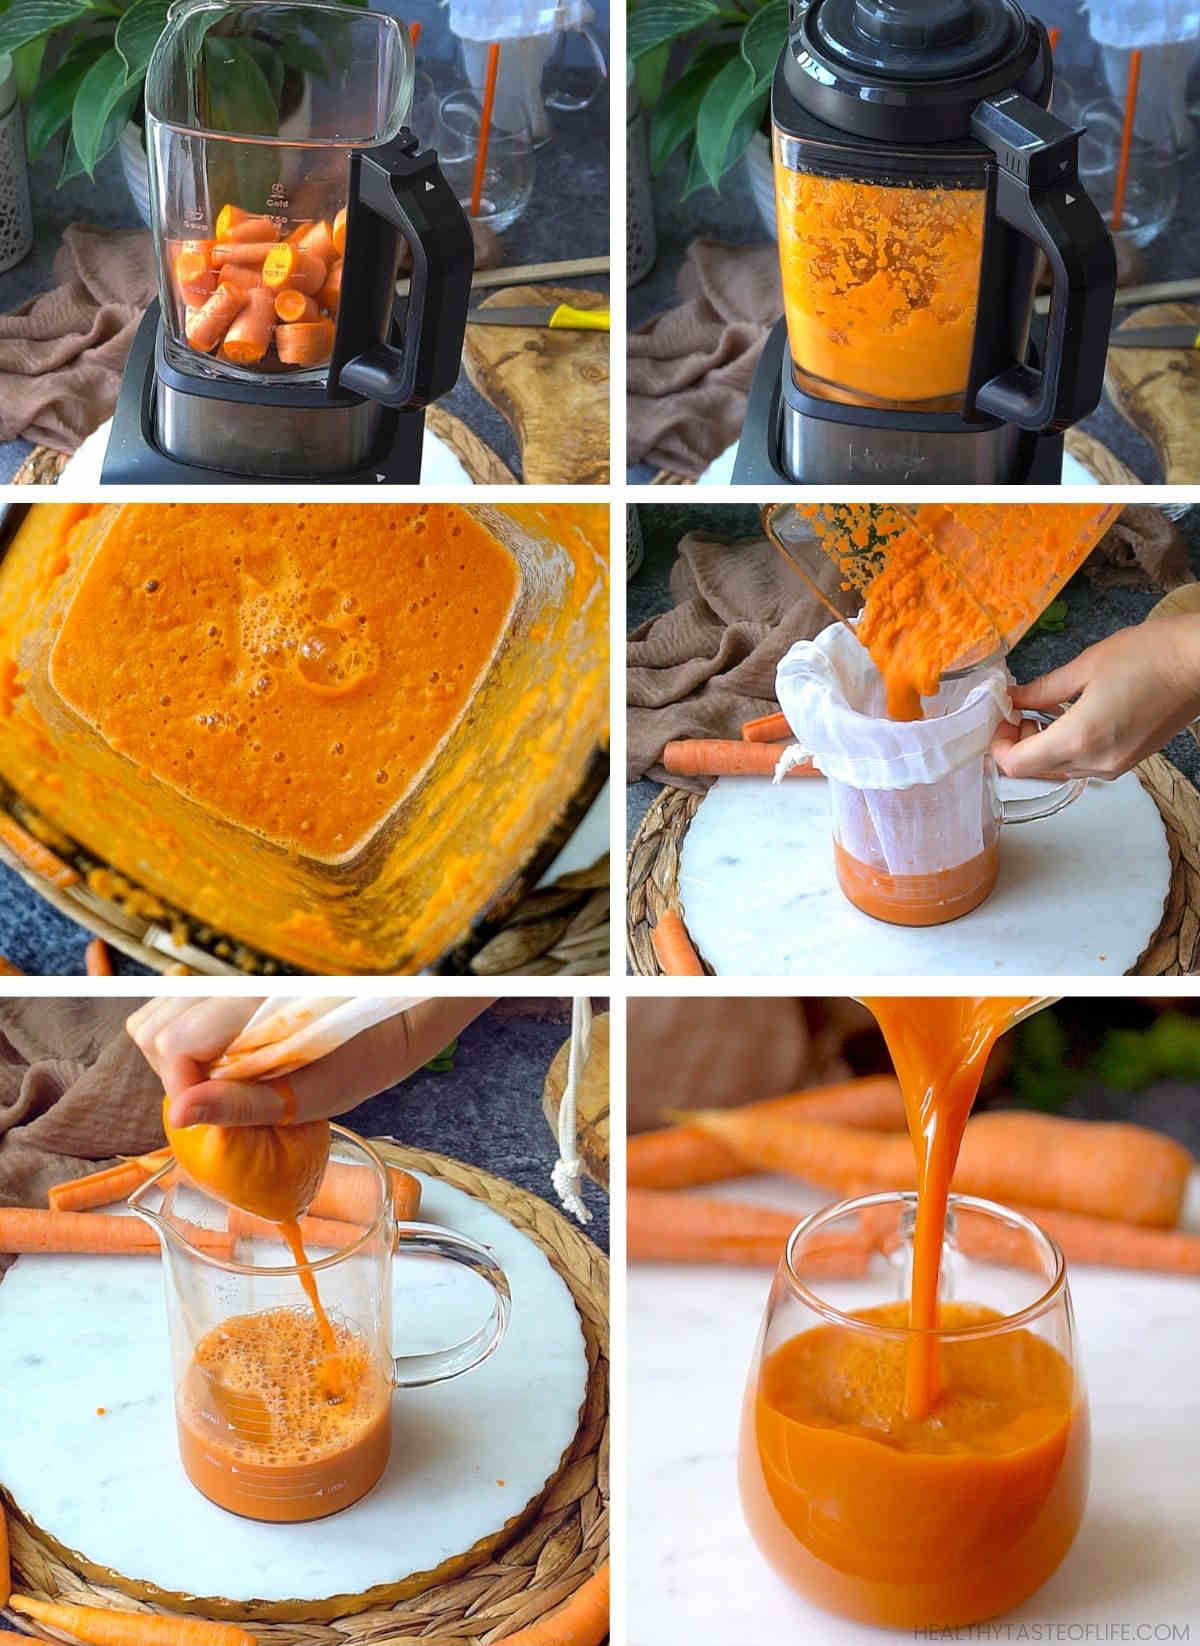 How to make carrot juice without a juicer and how to make carrot juice with a blender.